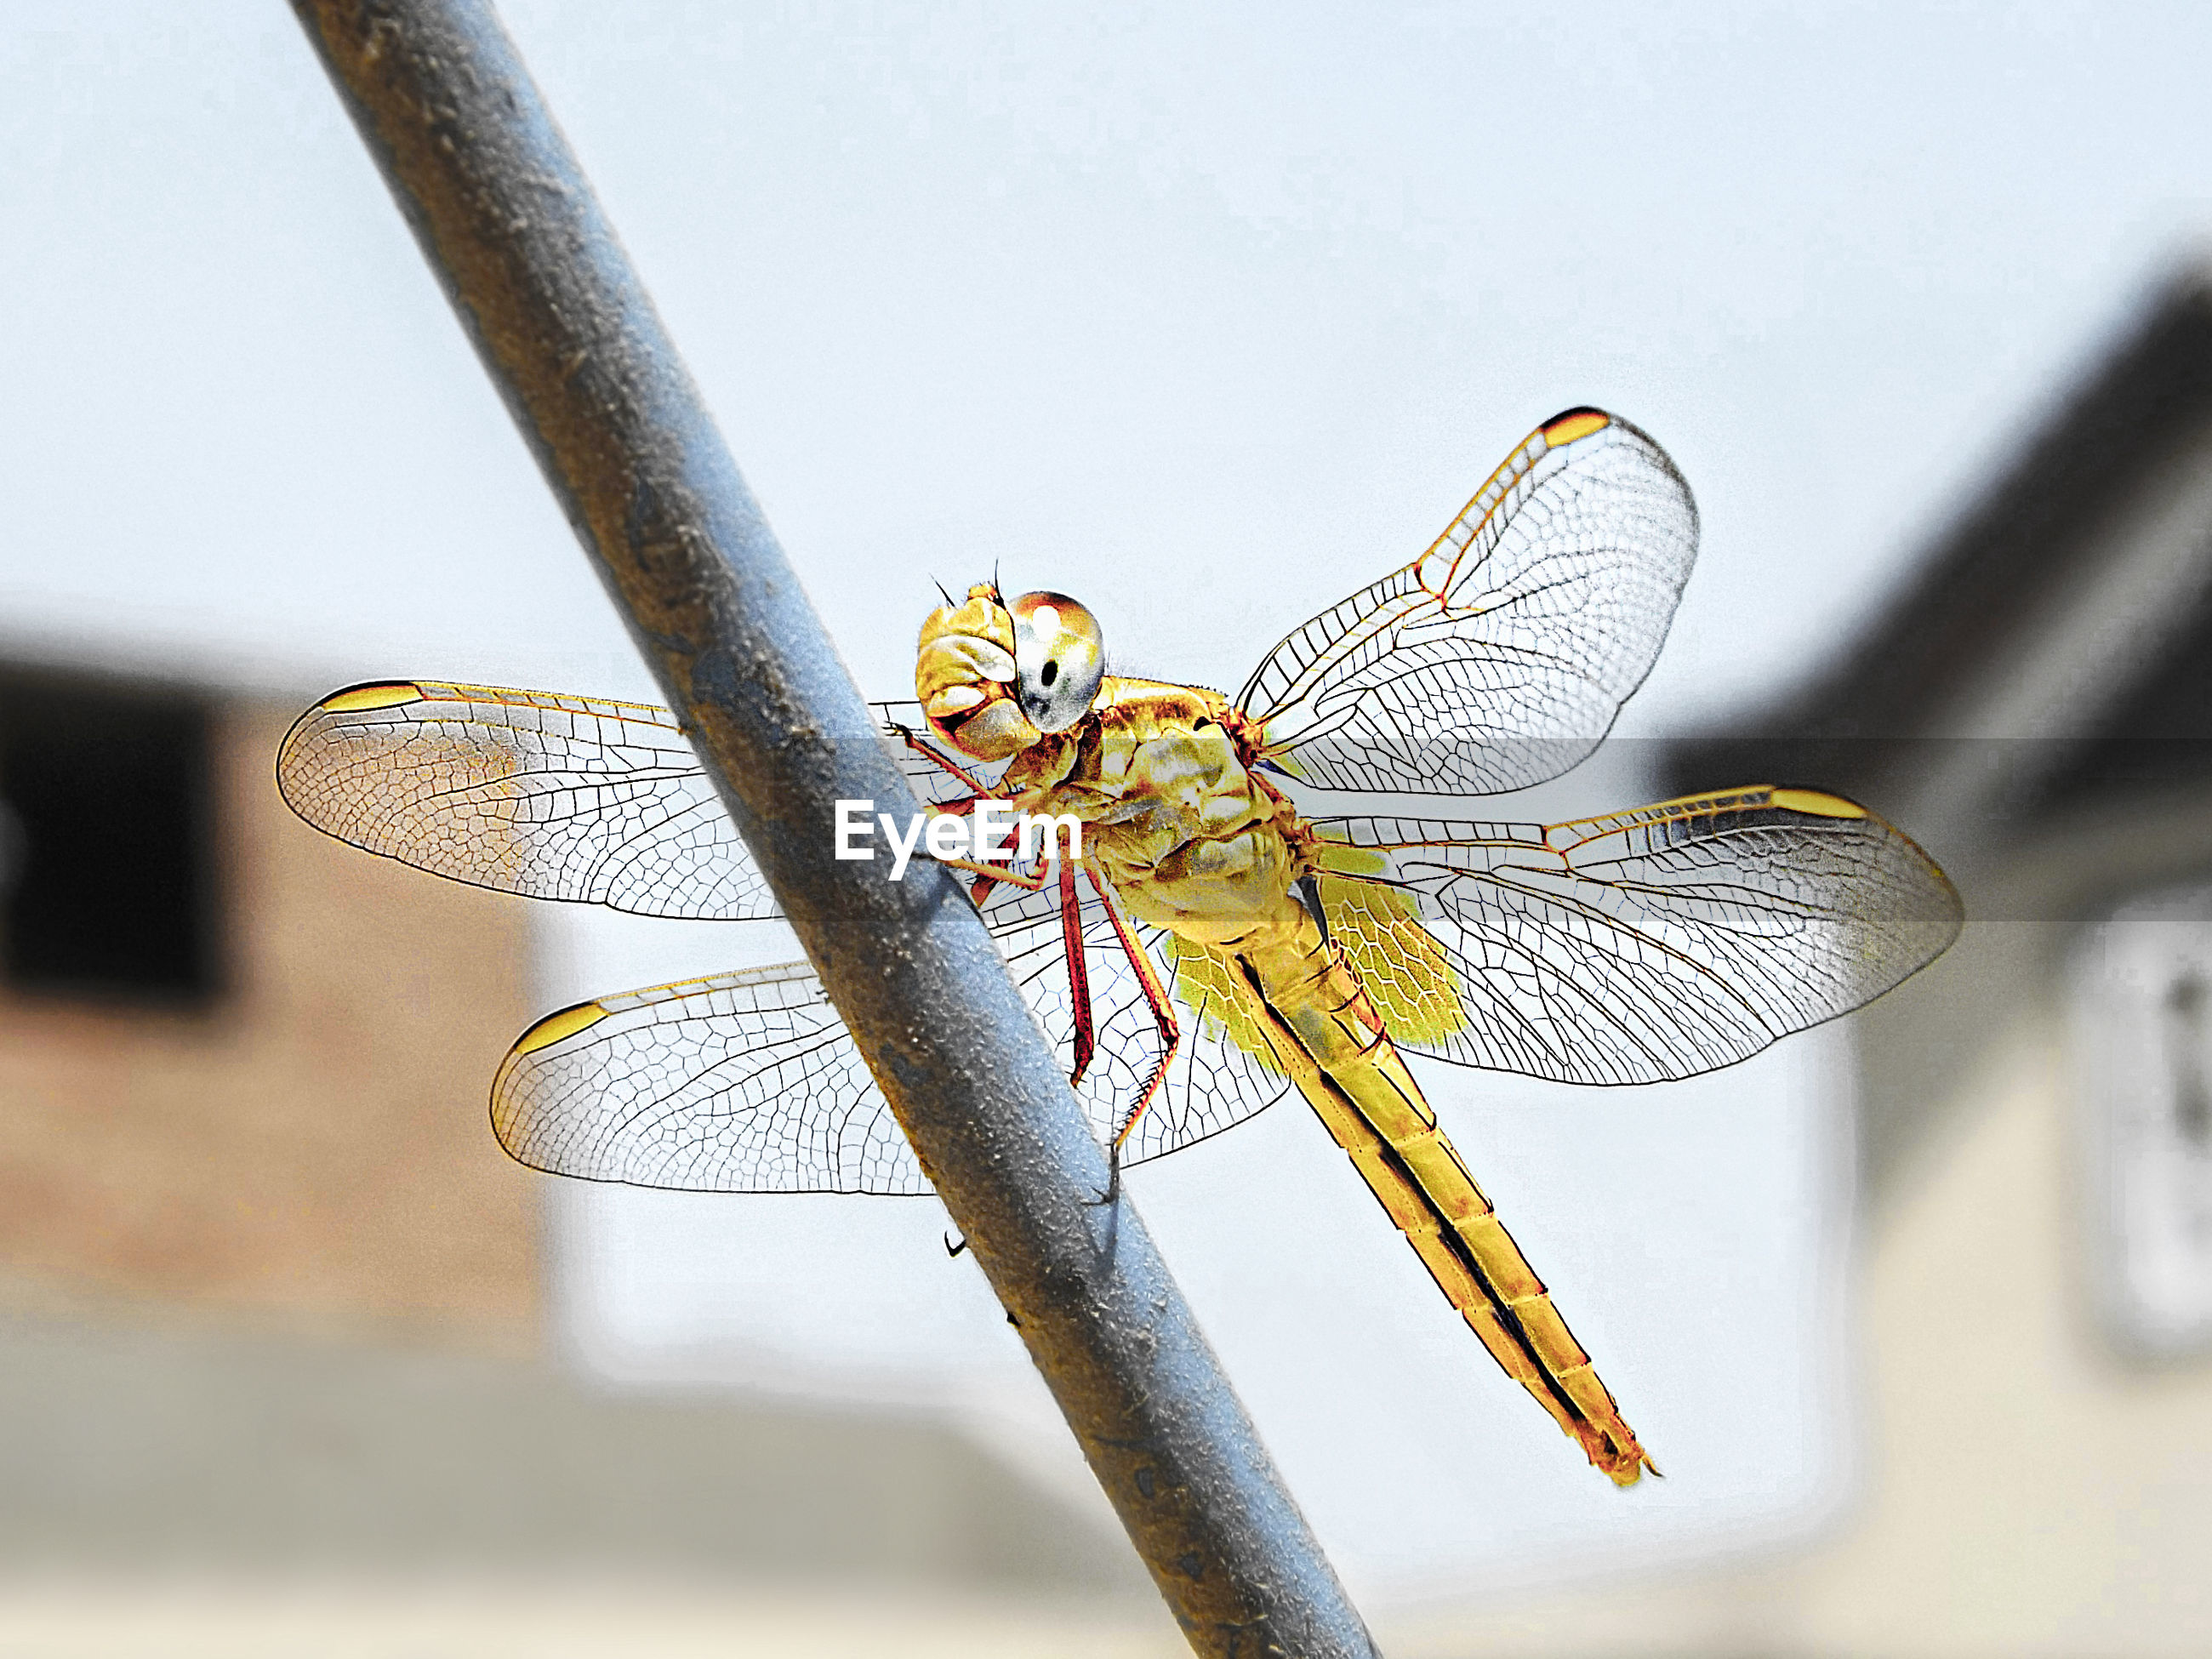 VIEW OF DRAGONFLY ON LEAF